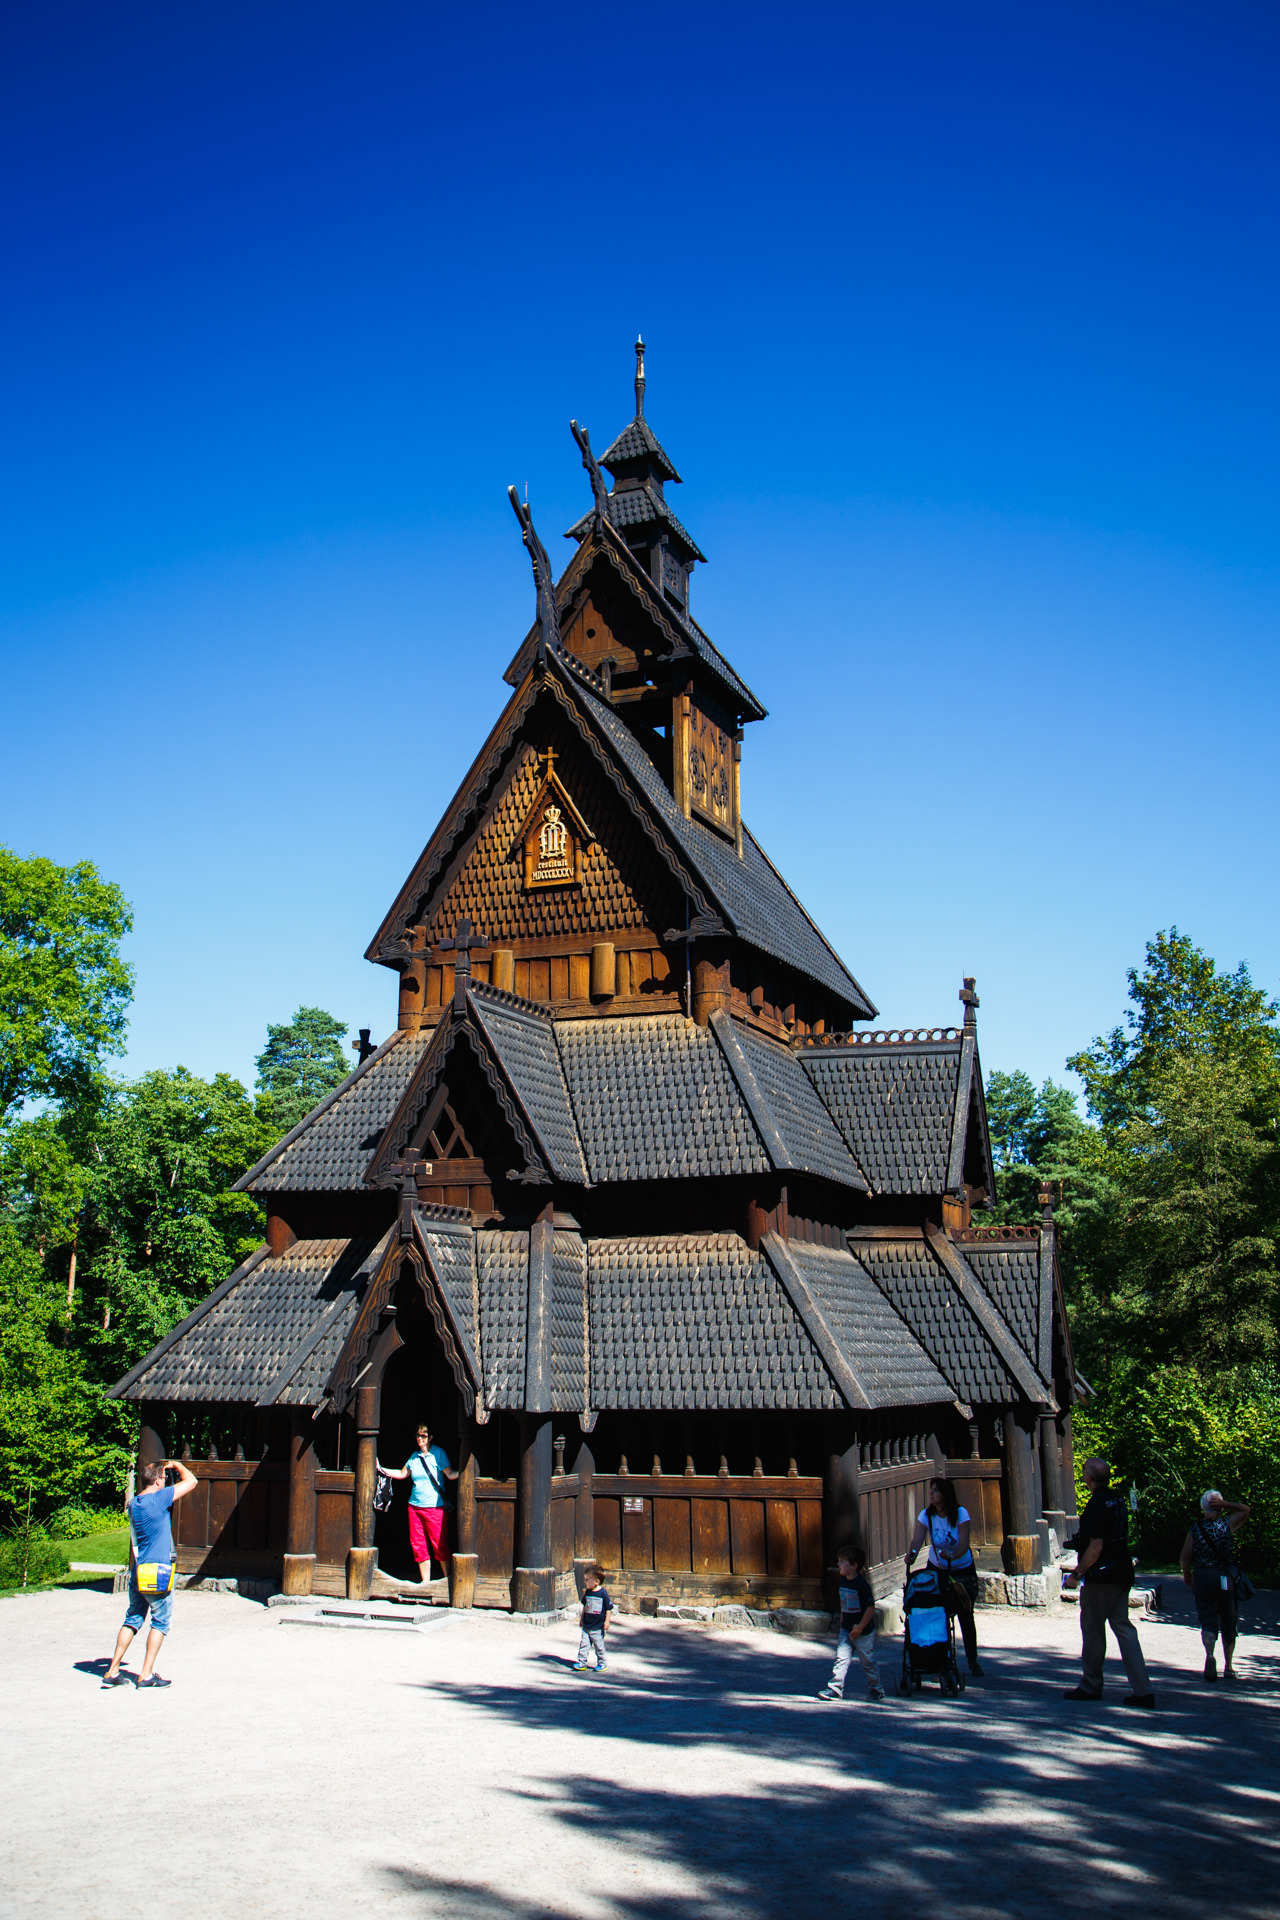 This Stave Church was built in the 12th century in Gol and relocated to Oslo in 1884.  Read more about it here .